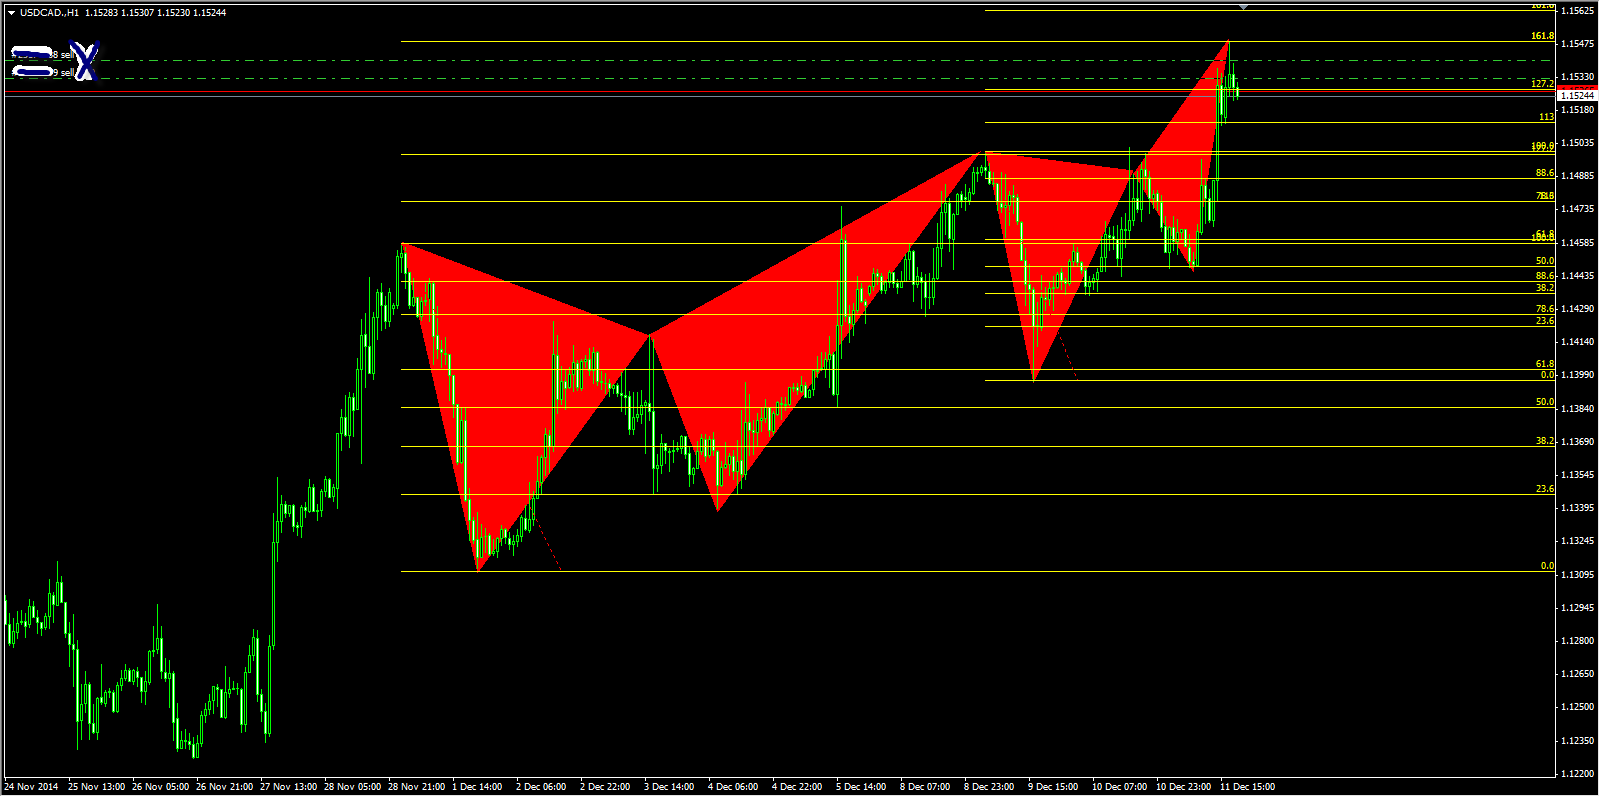 bearish butterfly pattern USDCAD continuation